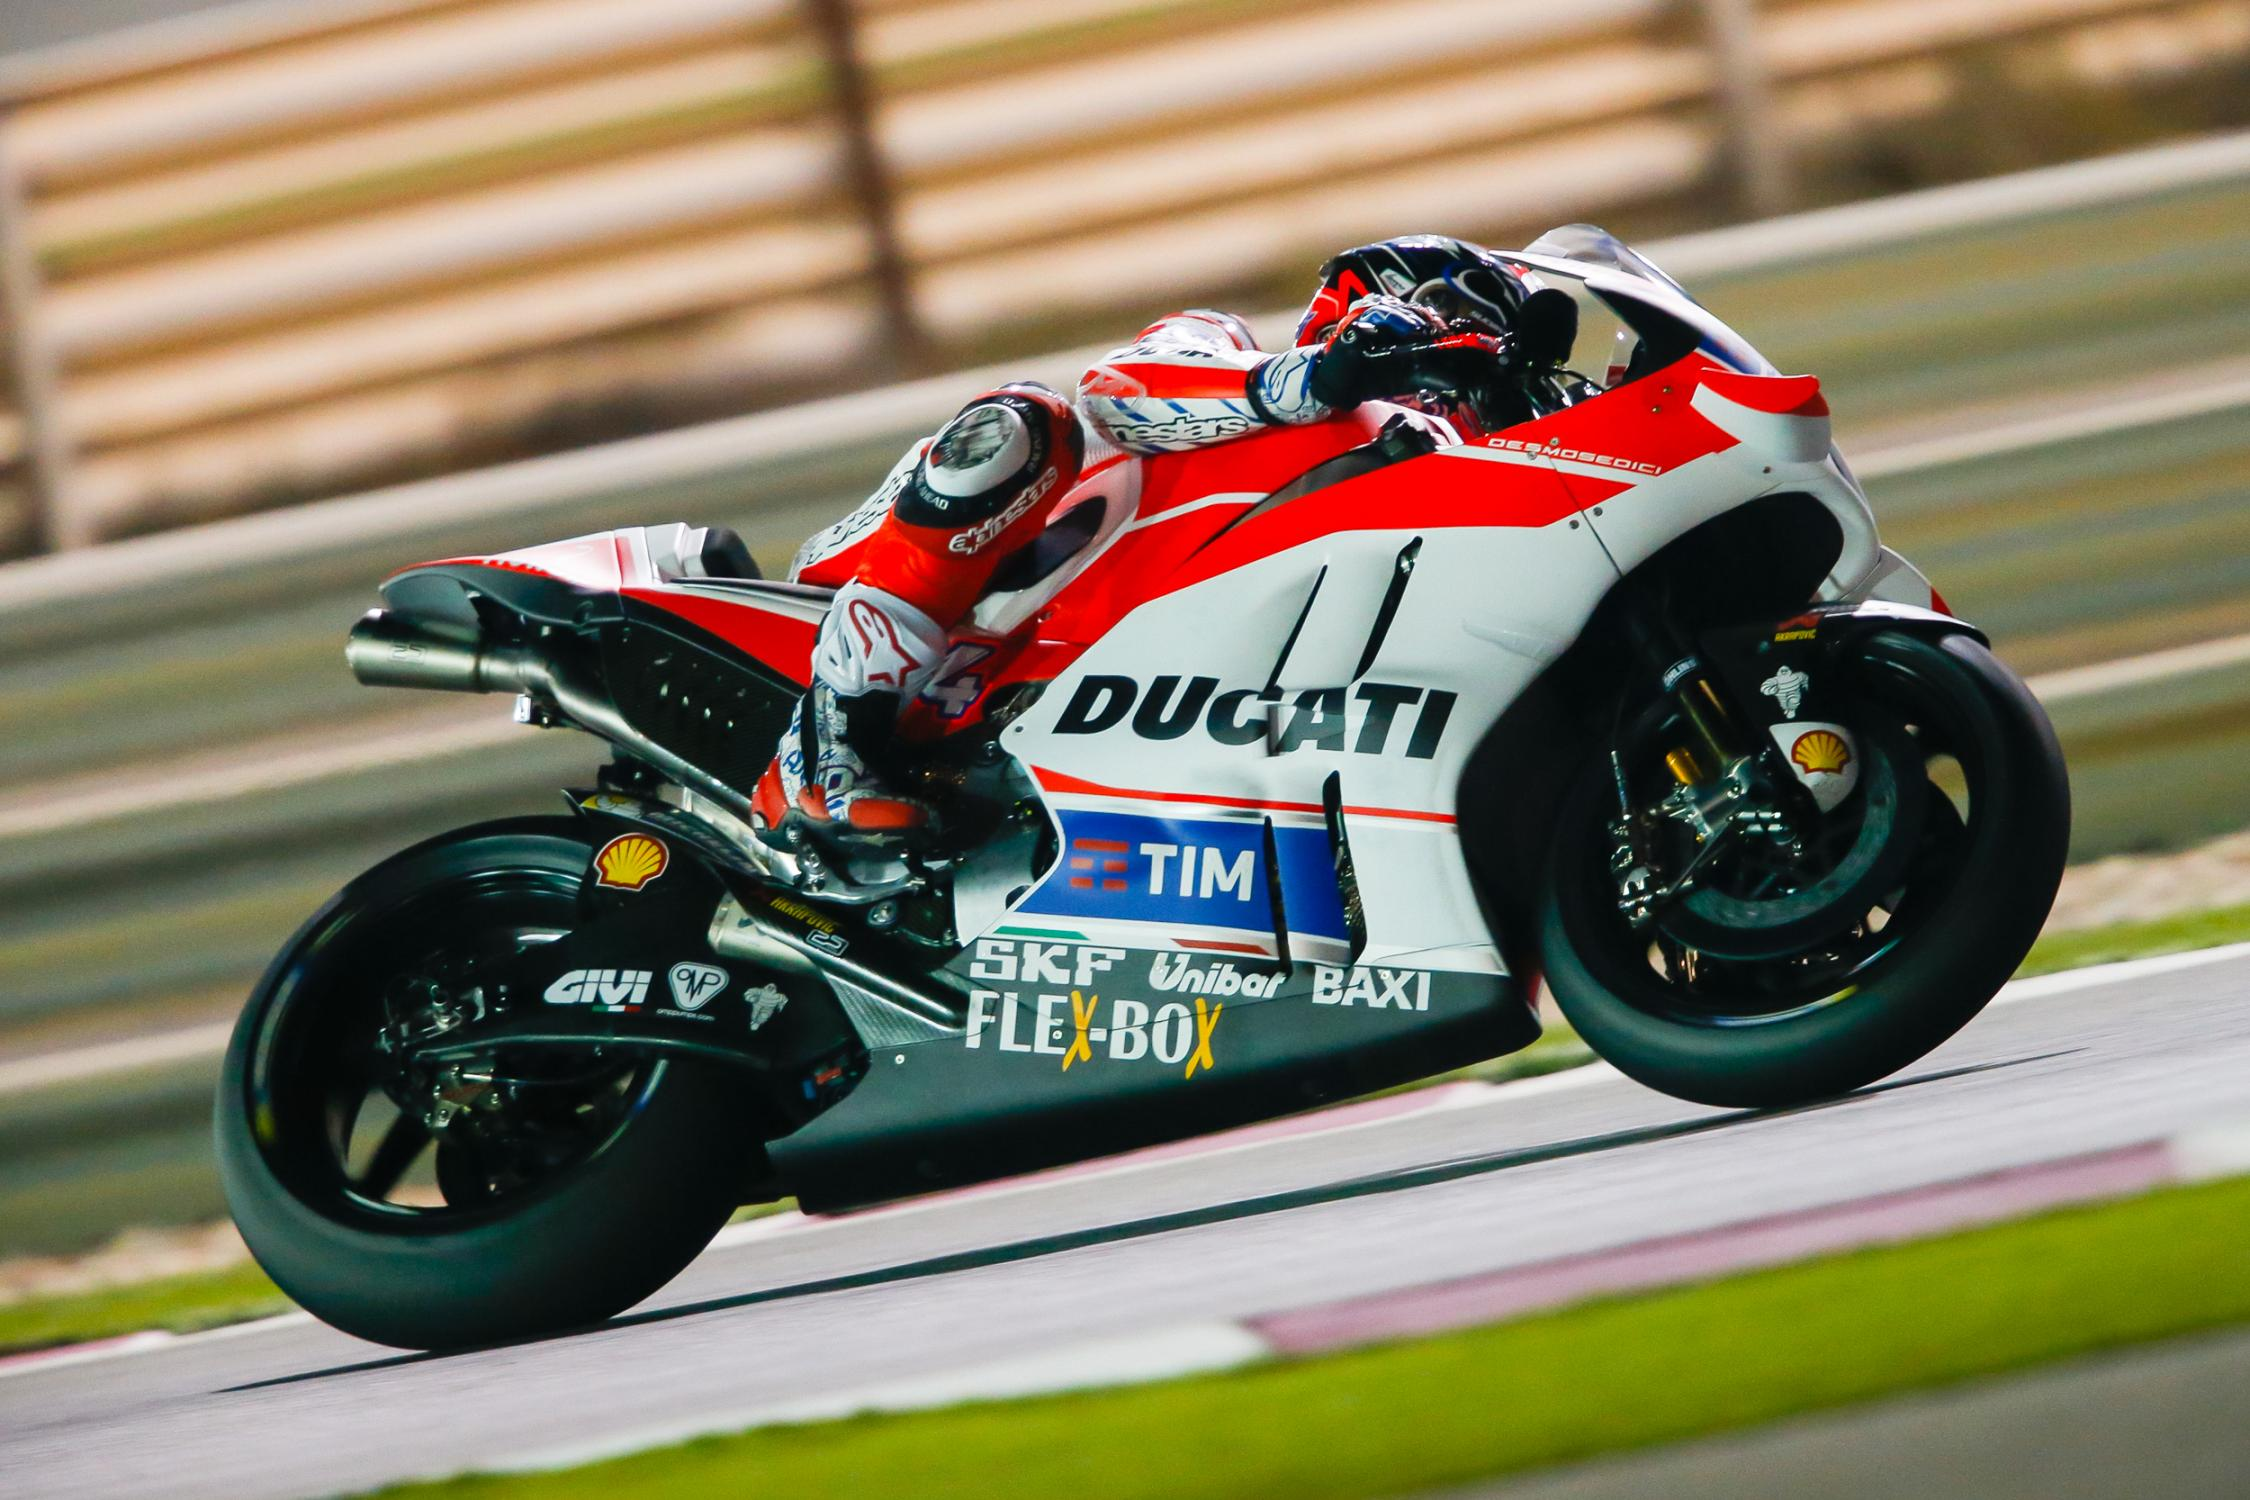 Lorenzo Leads Day 1 in Qatar, Vinales Is Right Behind Him - autoevolution